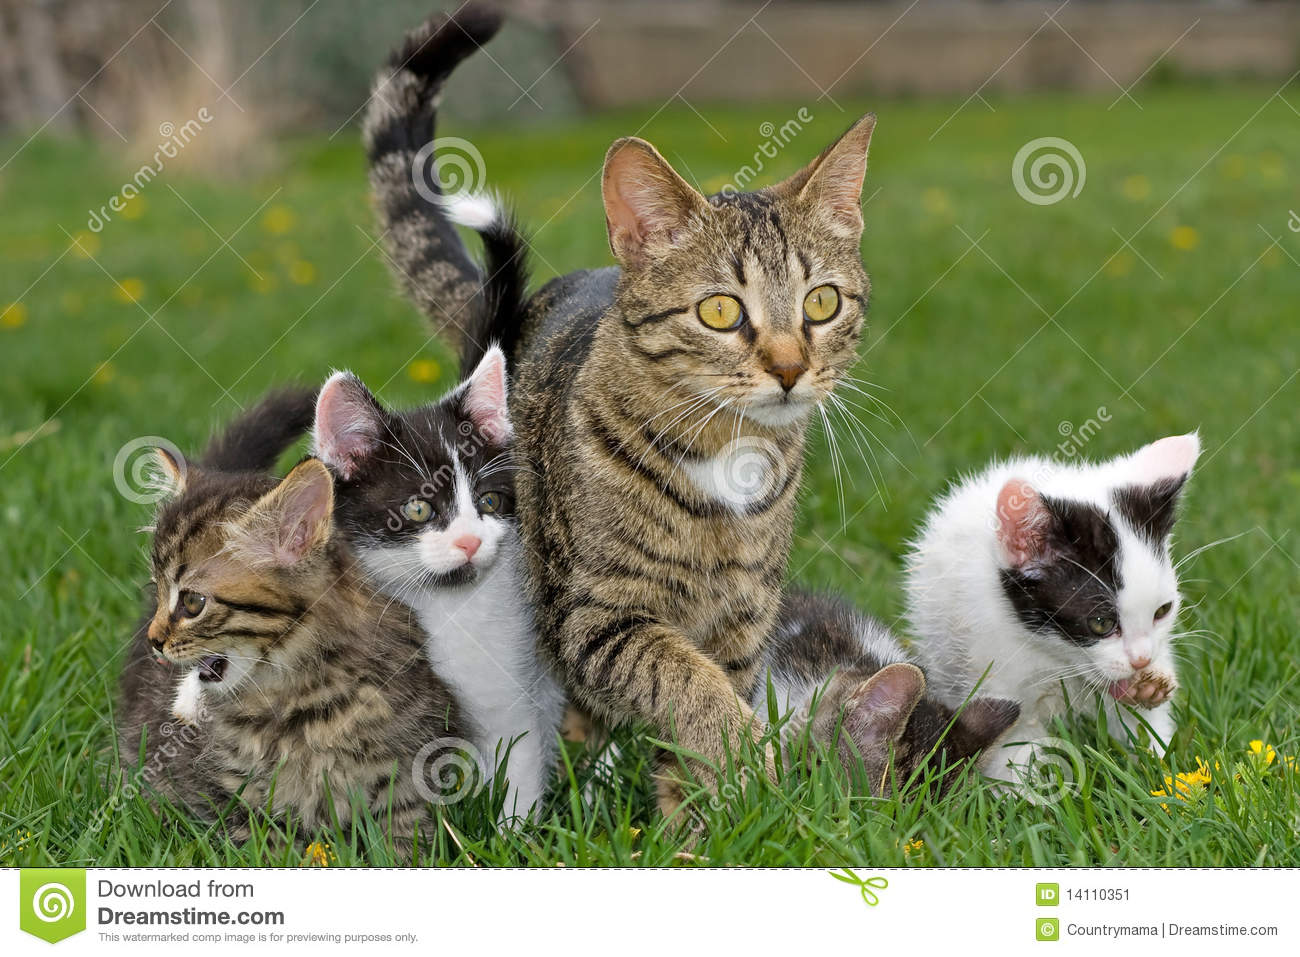 Kittens and mother.